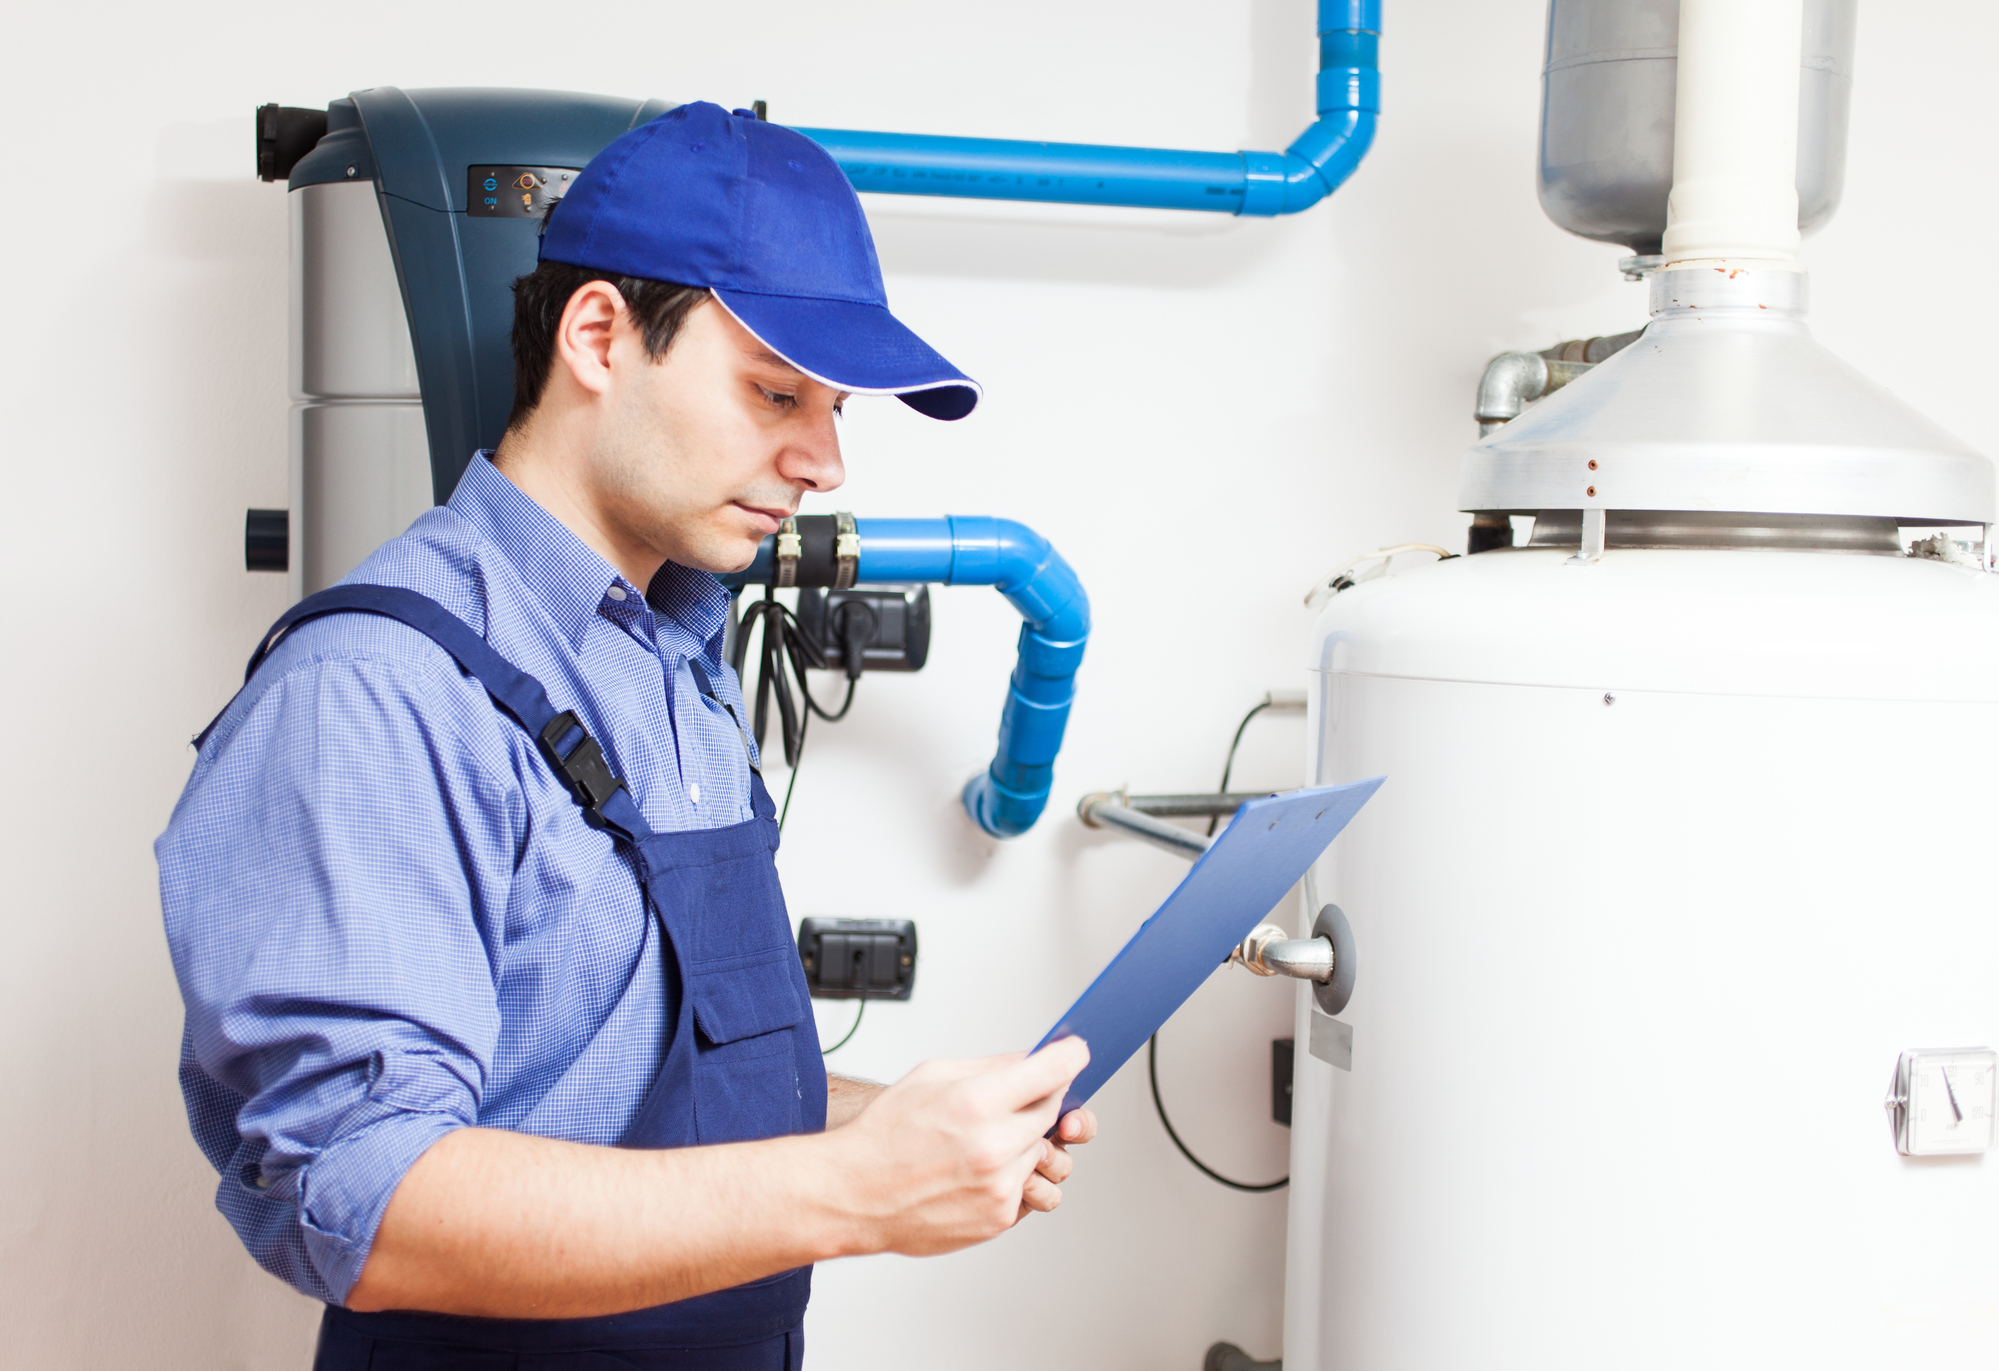 technician with a hot water heater